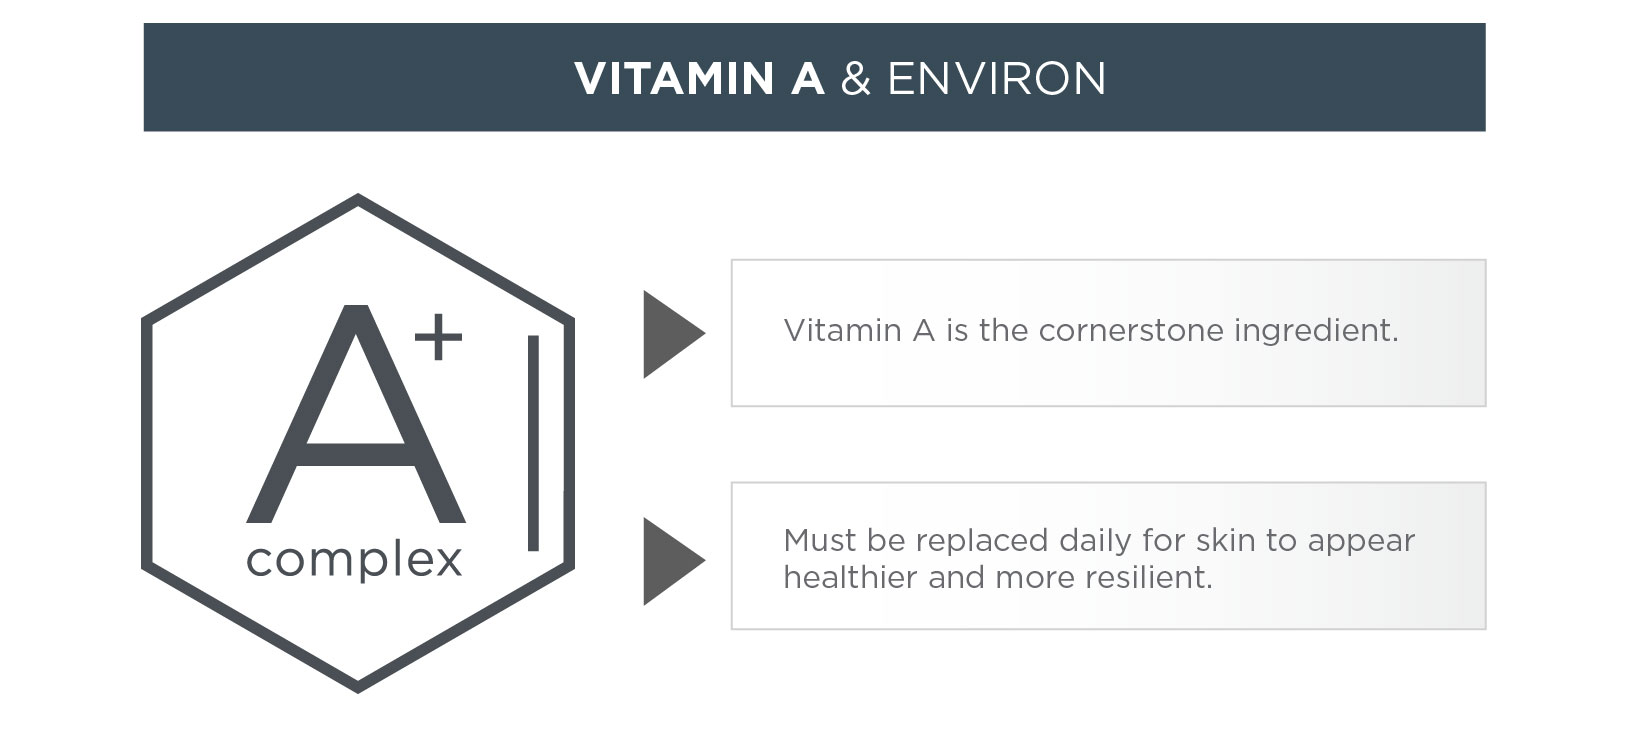 Vitamin A and Environ